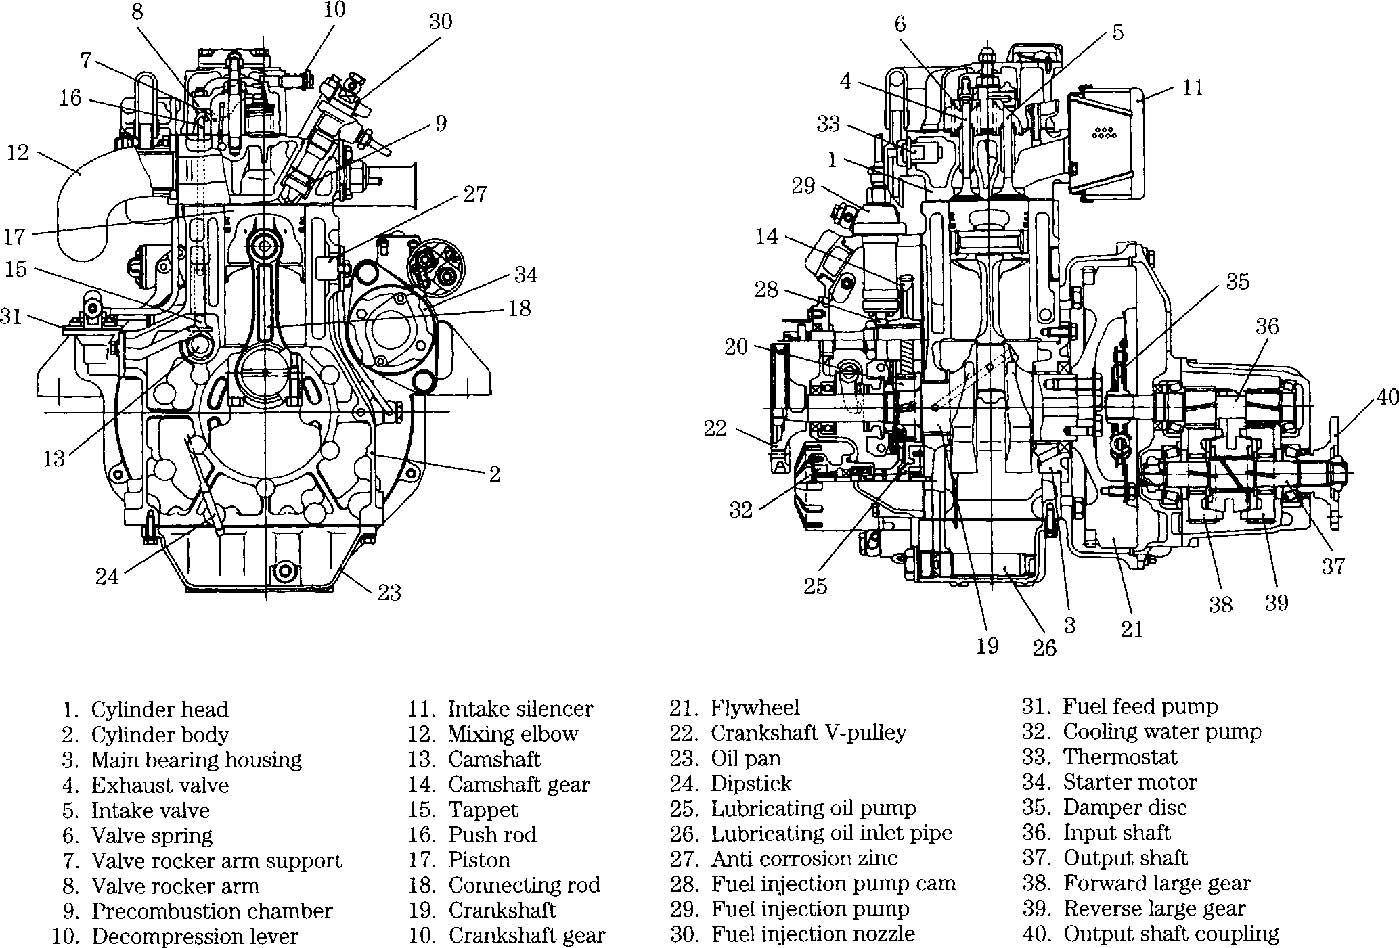 Marine Engine Diagram Wiring Will Be A Thing Of Hyundai Grace Radial Parts 27 Images Diesel